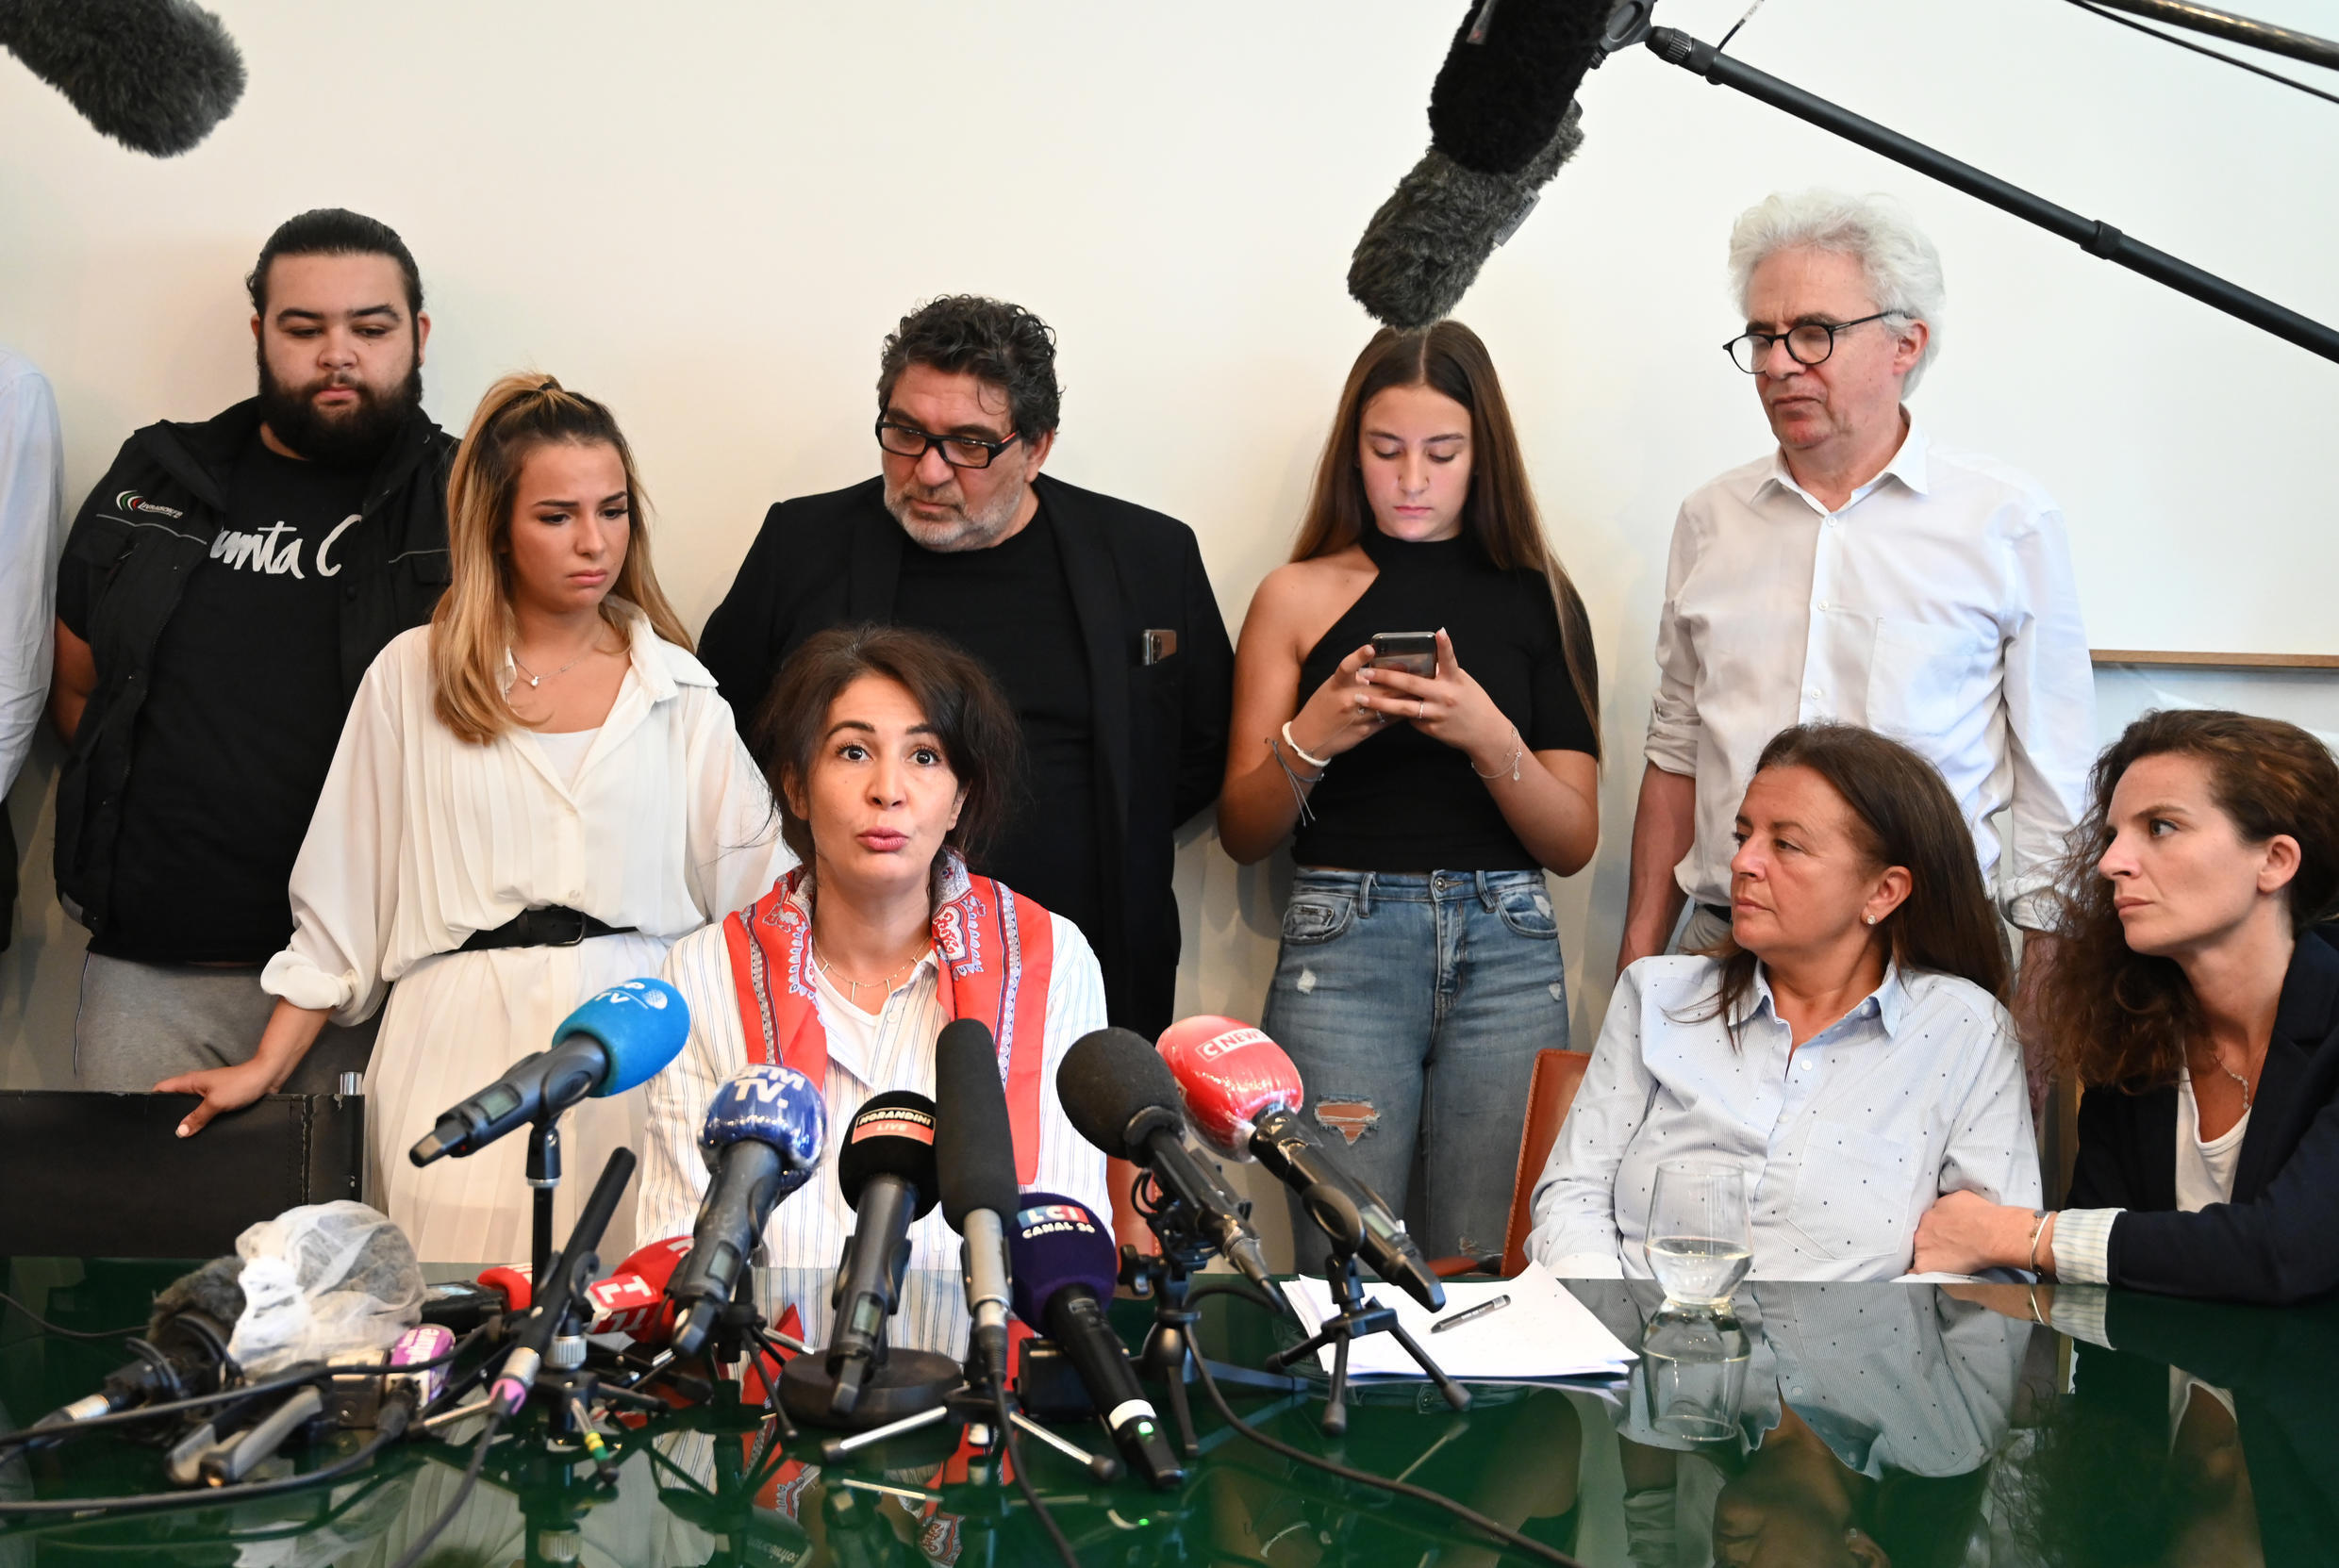 Doria Chouviat (C), the widow of Cedric Chouviat, a delivery driver who died after being pinned to the ground by arresting police officers in January 2020, speaks at a press conference in Paris, on June 23, 2020.